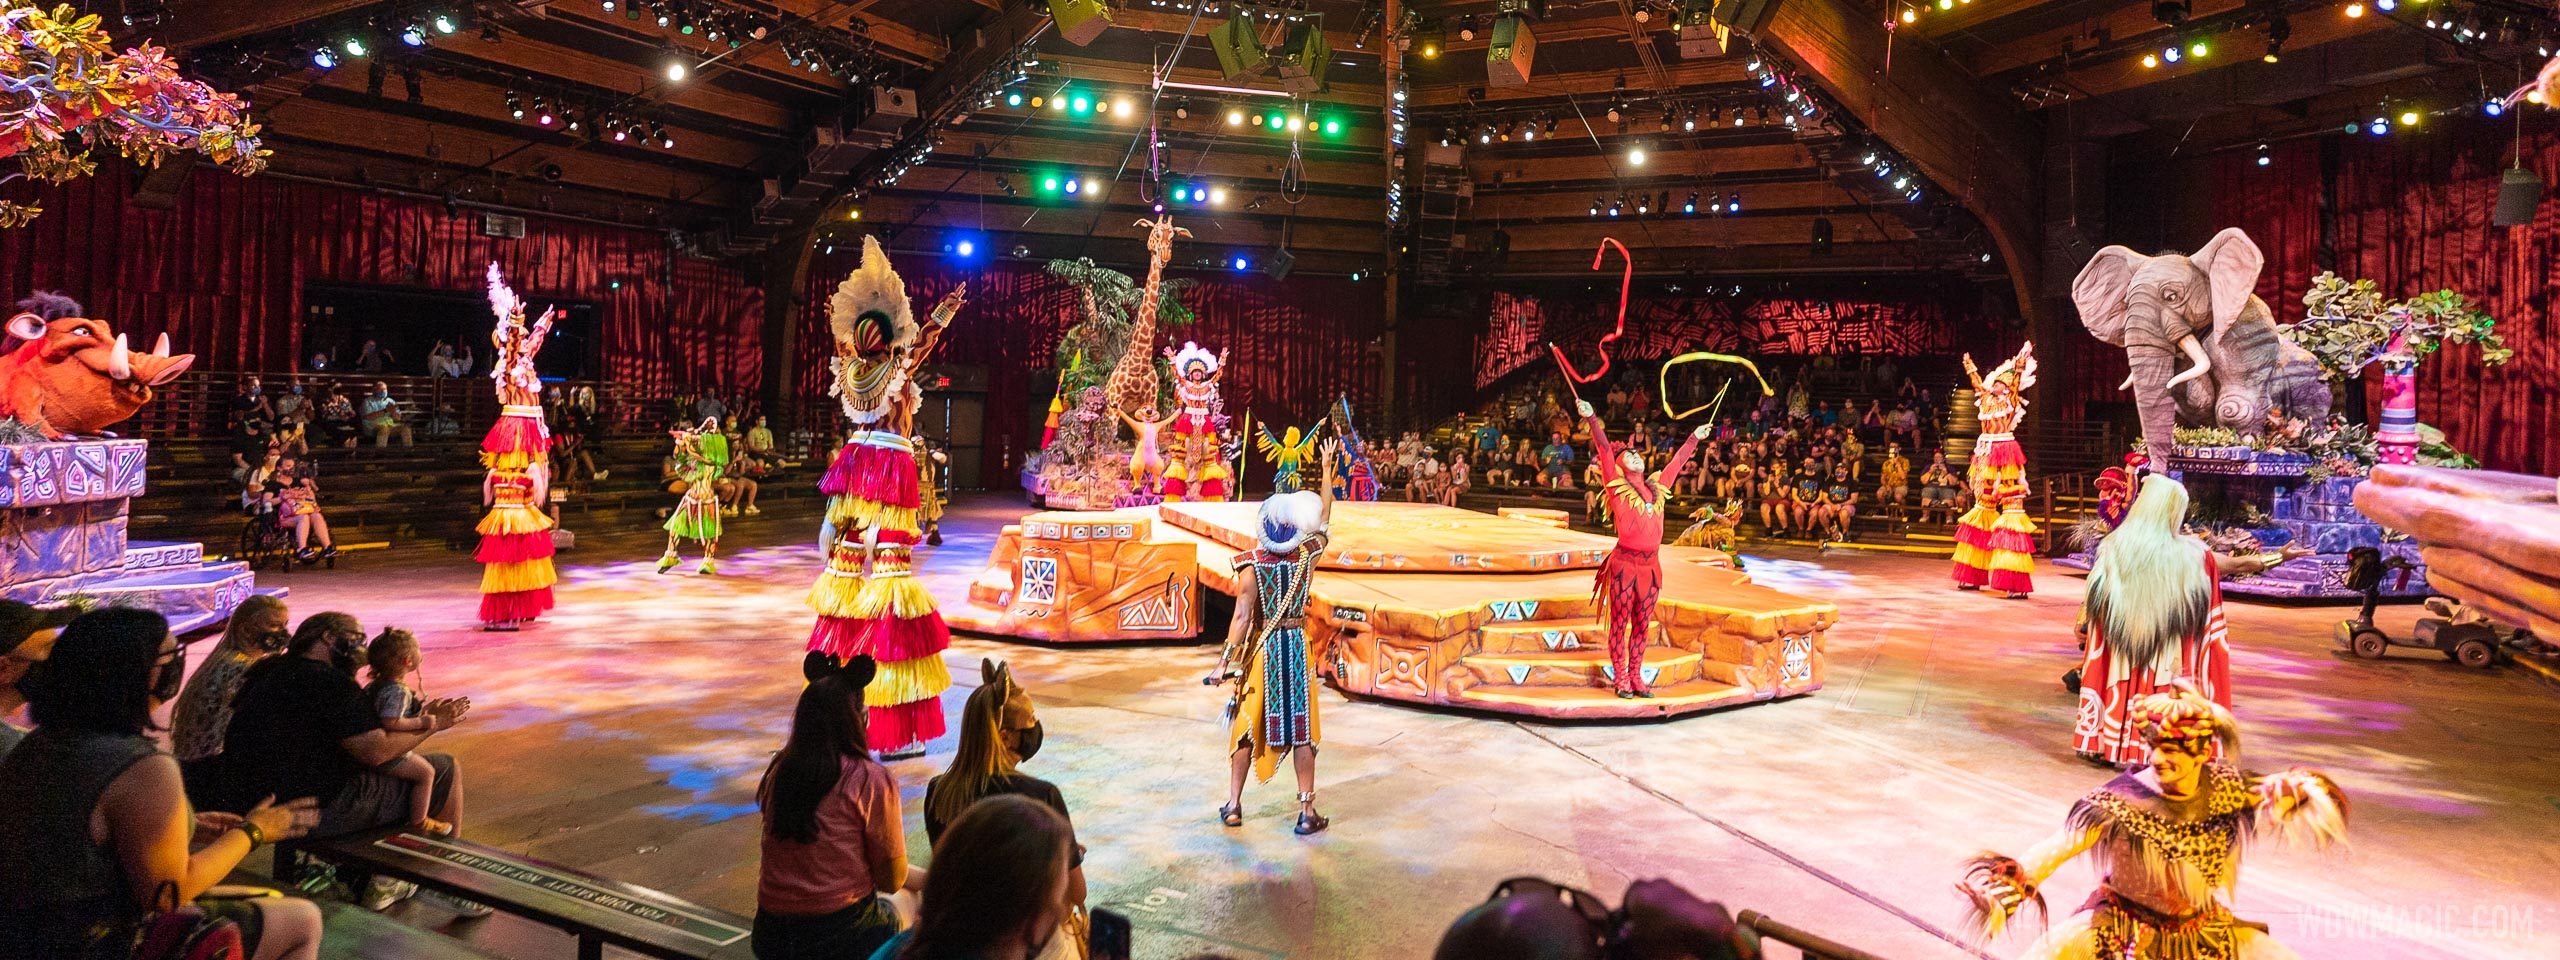 Stage shows are back at Walt Disney World with the opening of 'A Celebration of Festival of the Lion King'